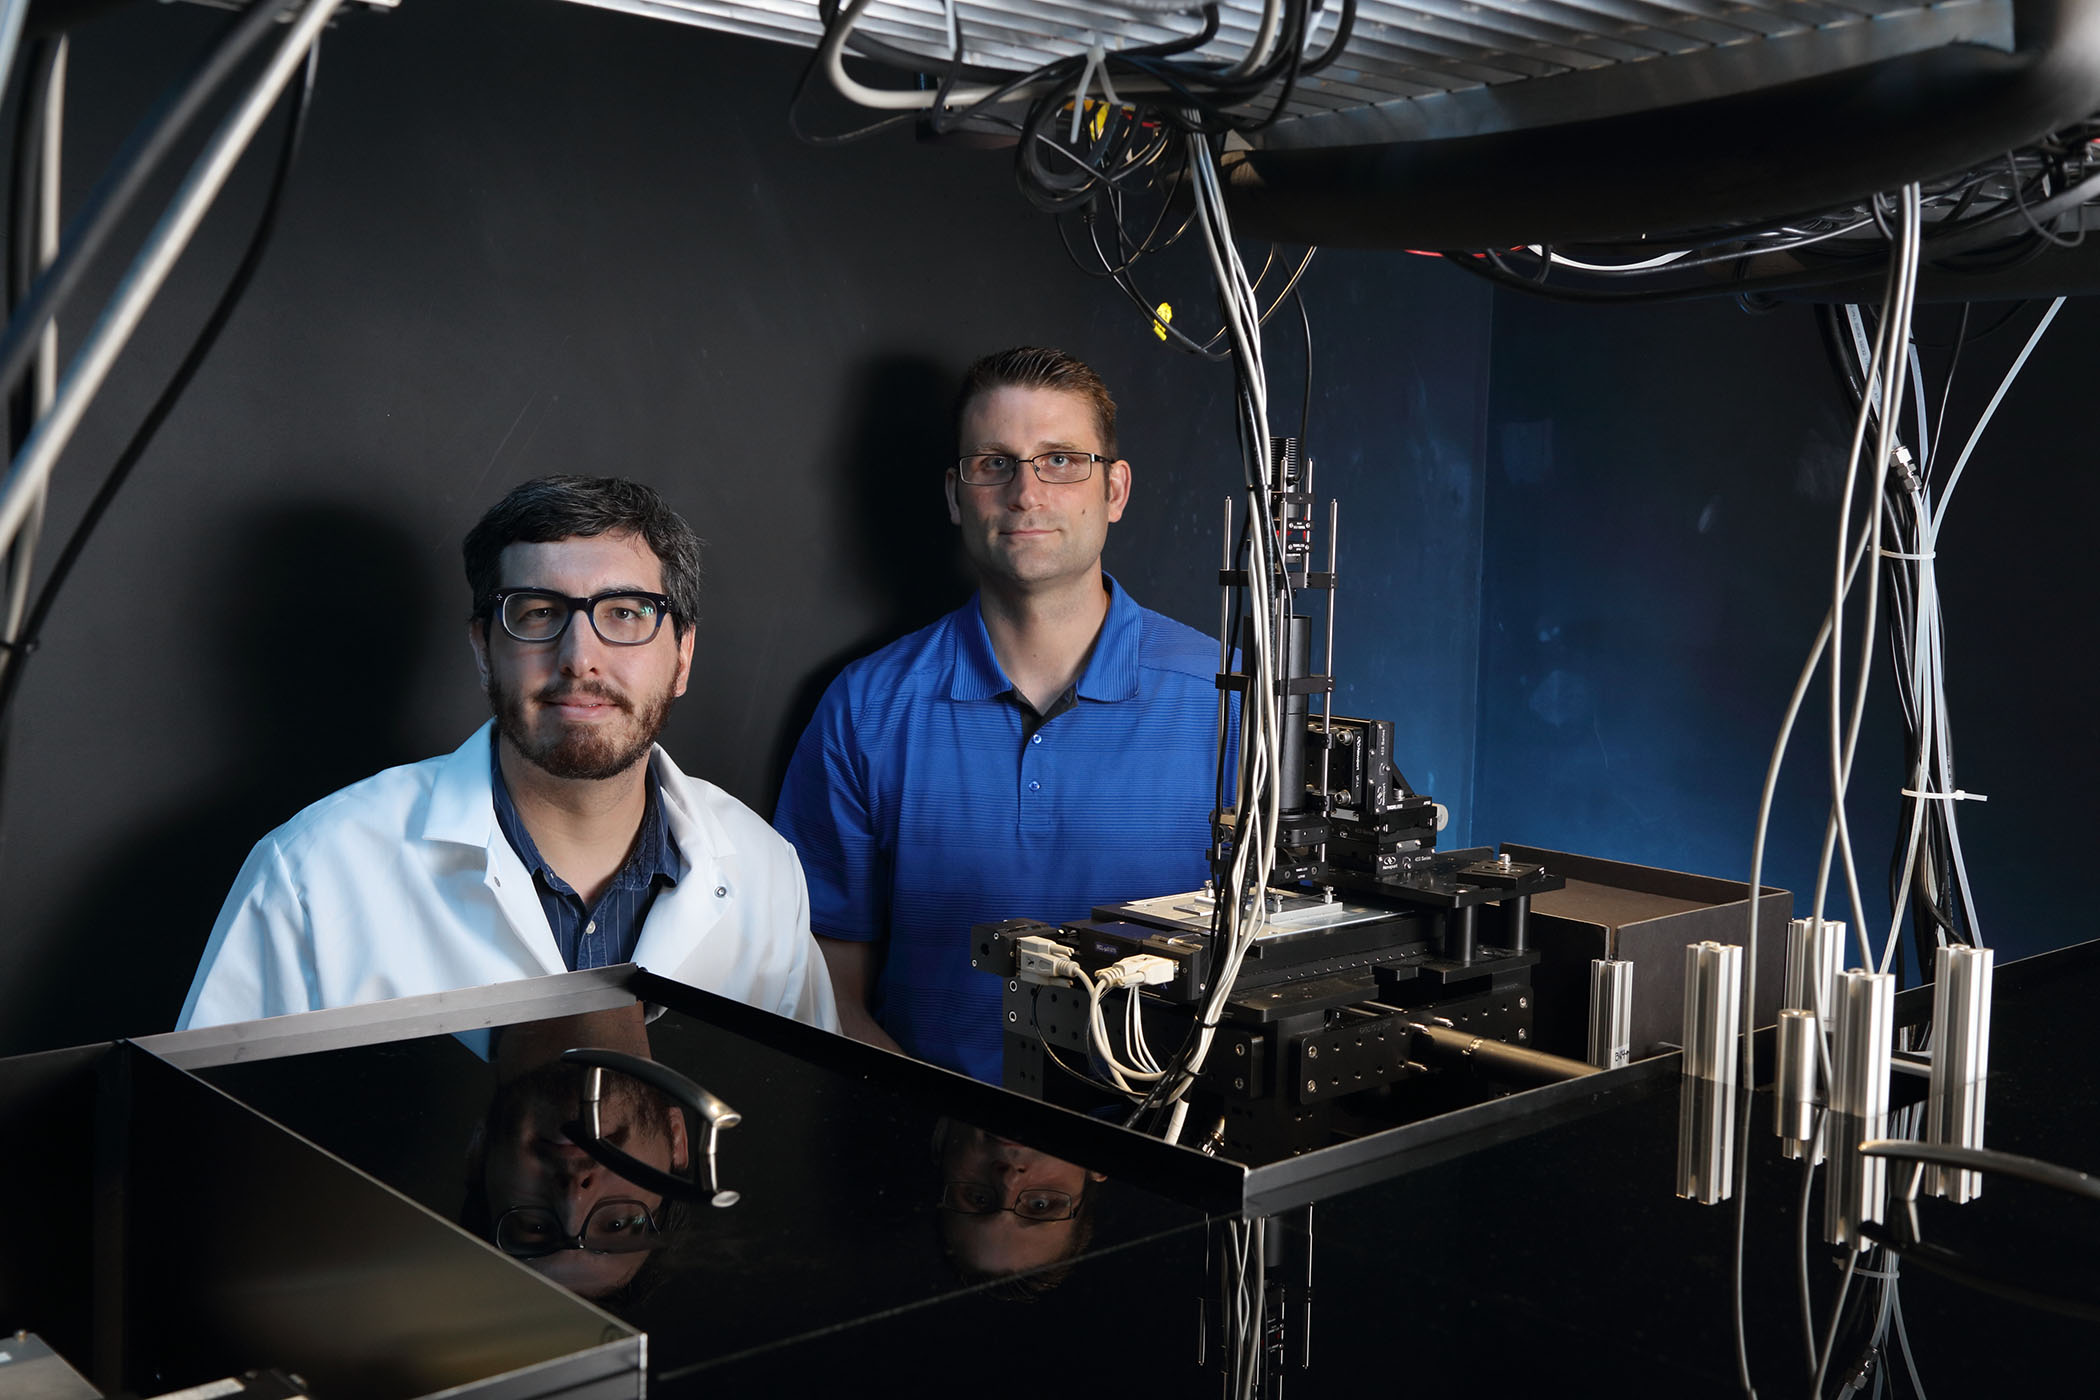 Charles and Andreas behind our home-built super-resolution microscope